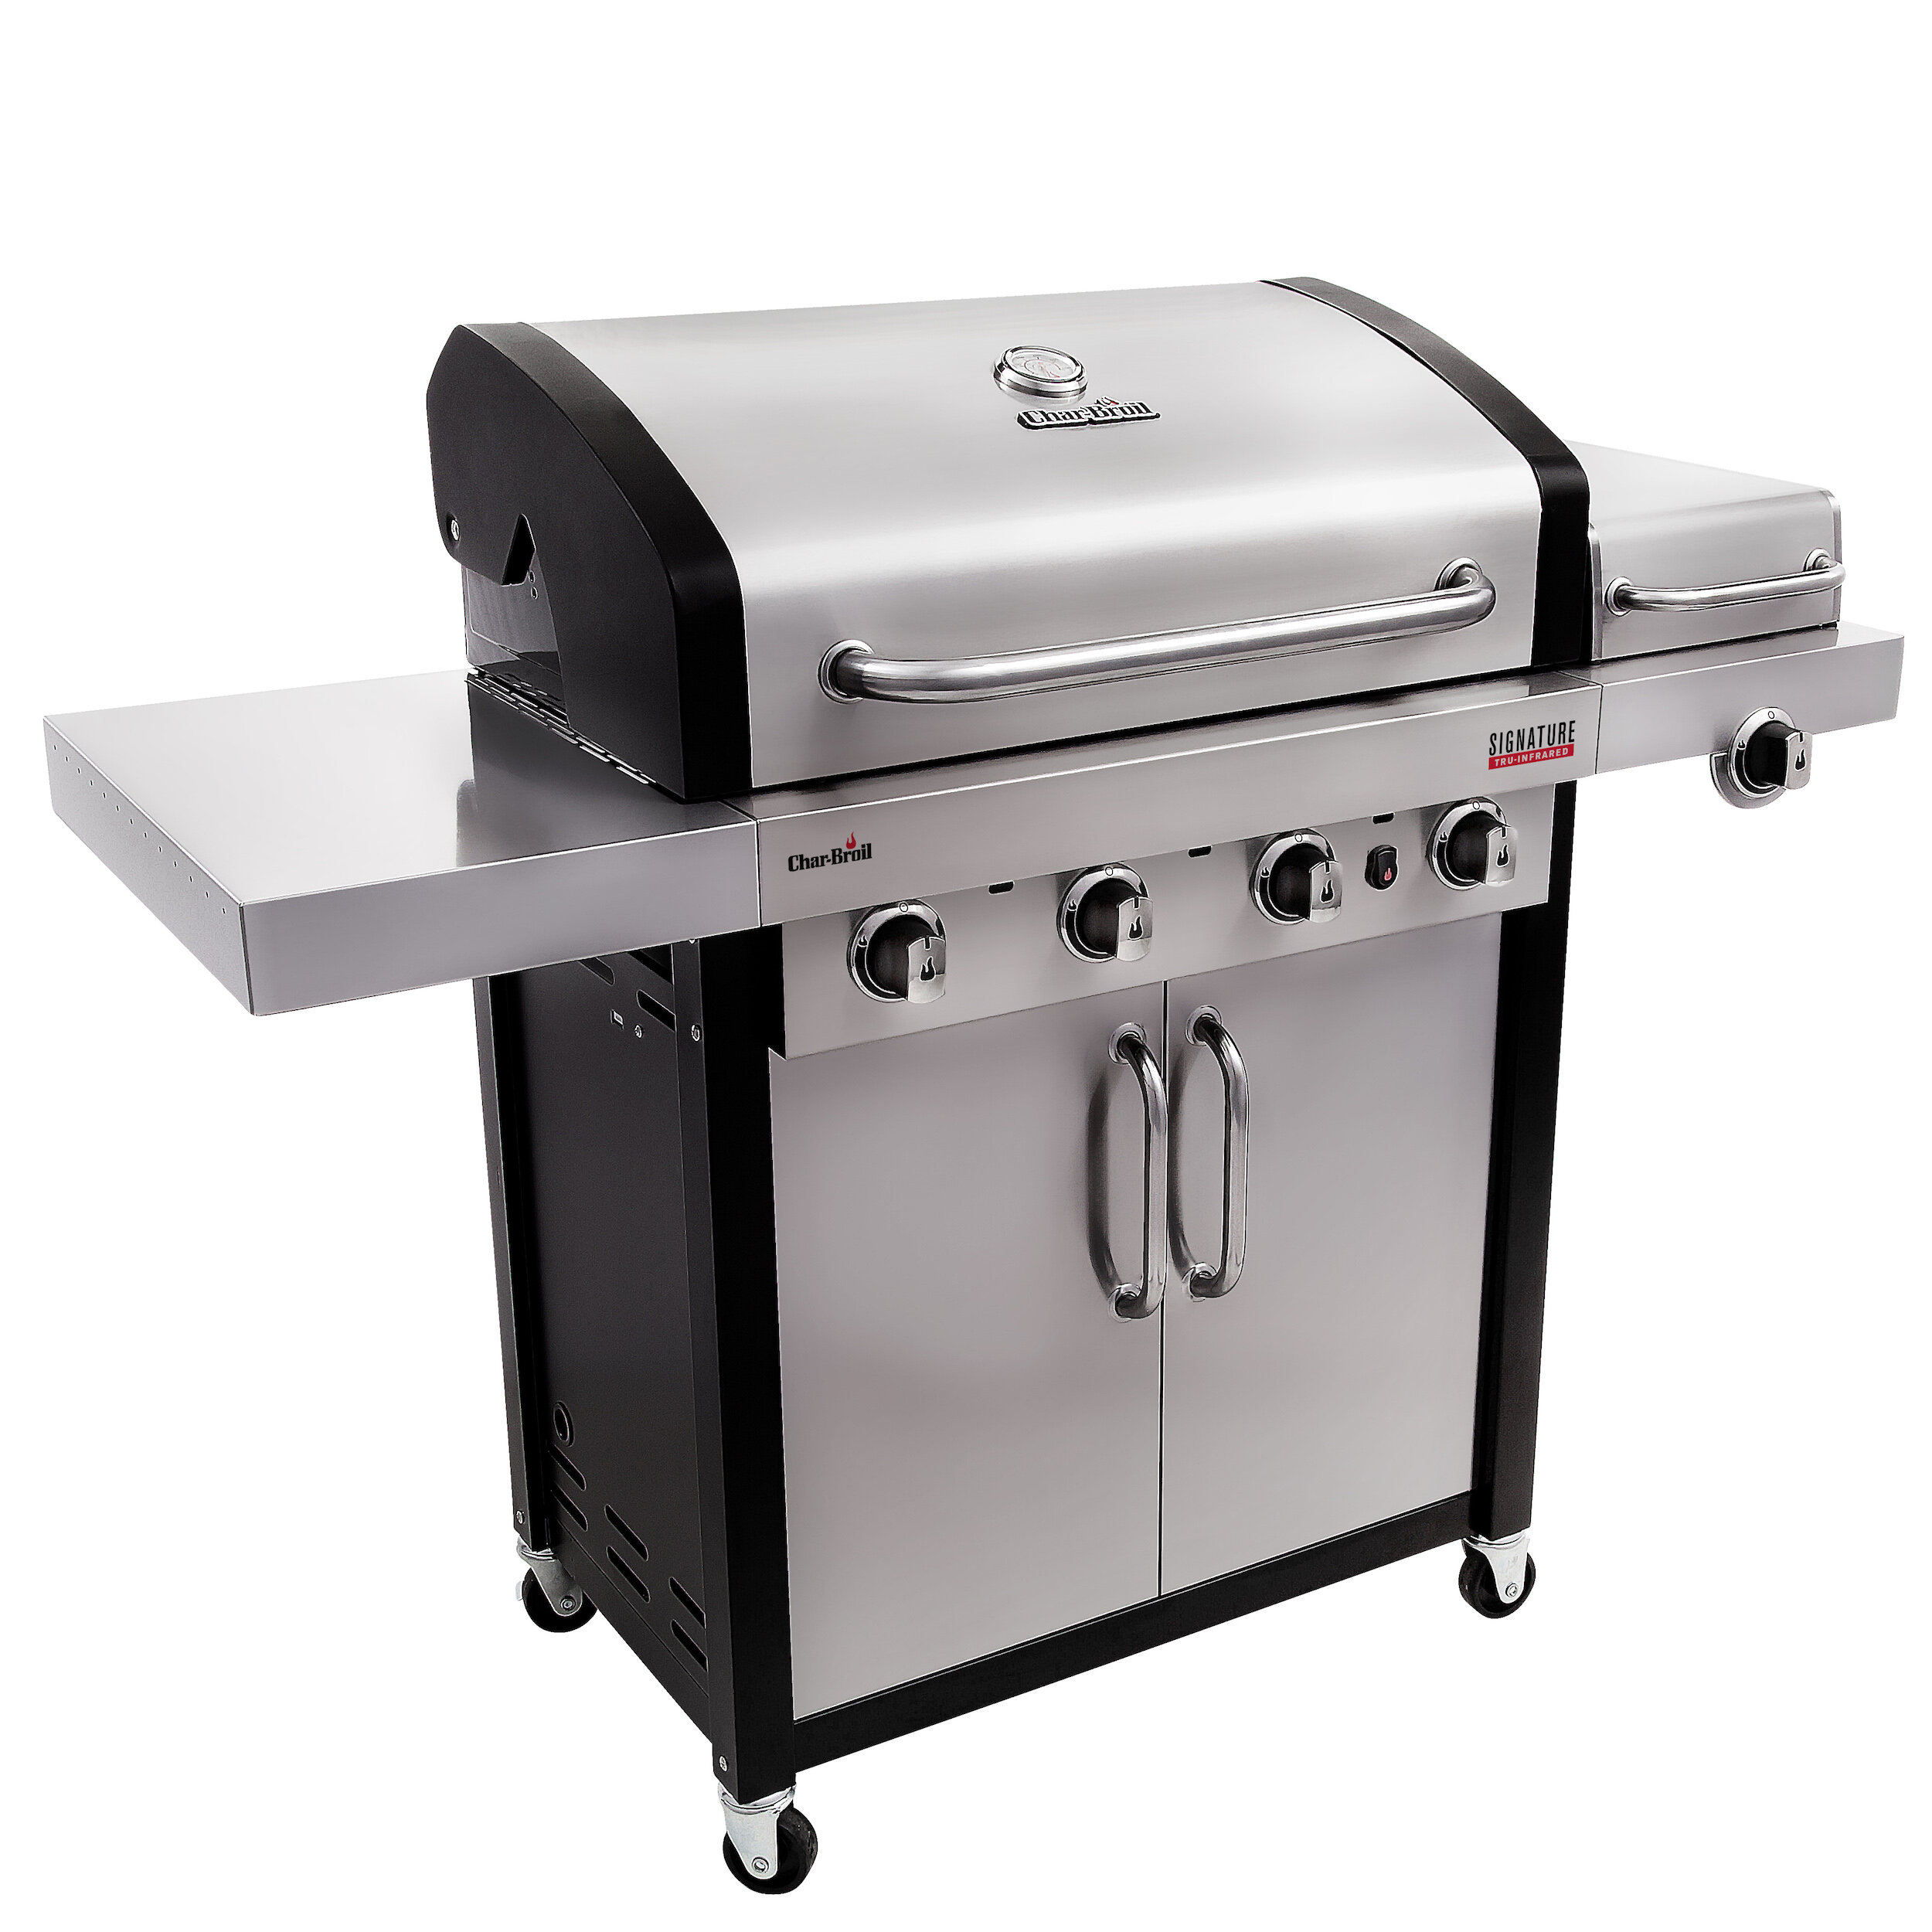 broil garden char ca amazon infrared performance grill dp tru burner patio bistro cart lawn gas